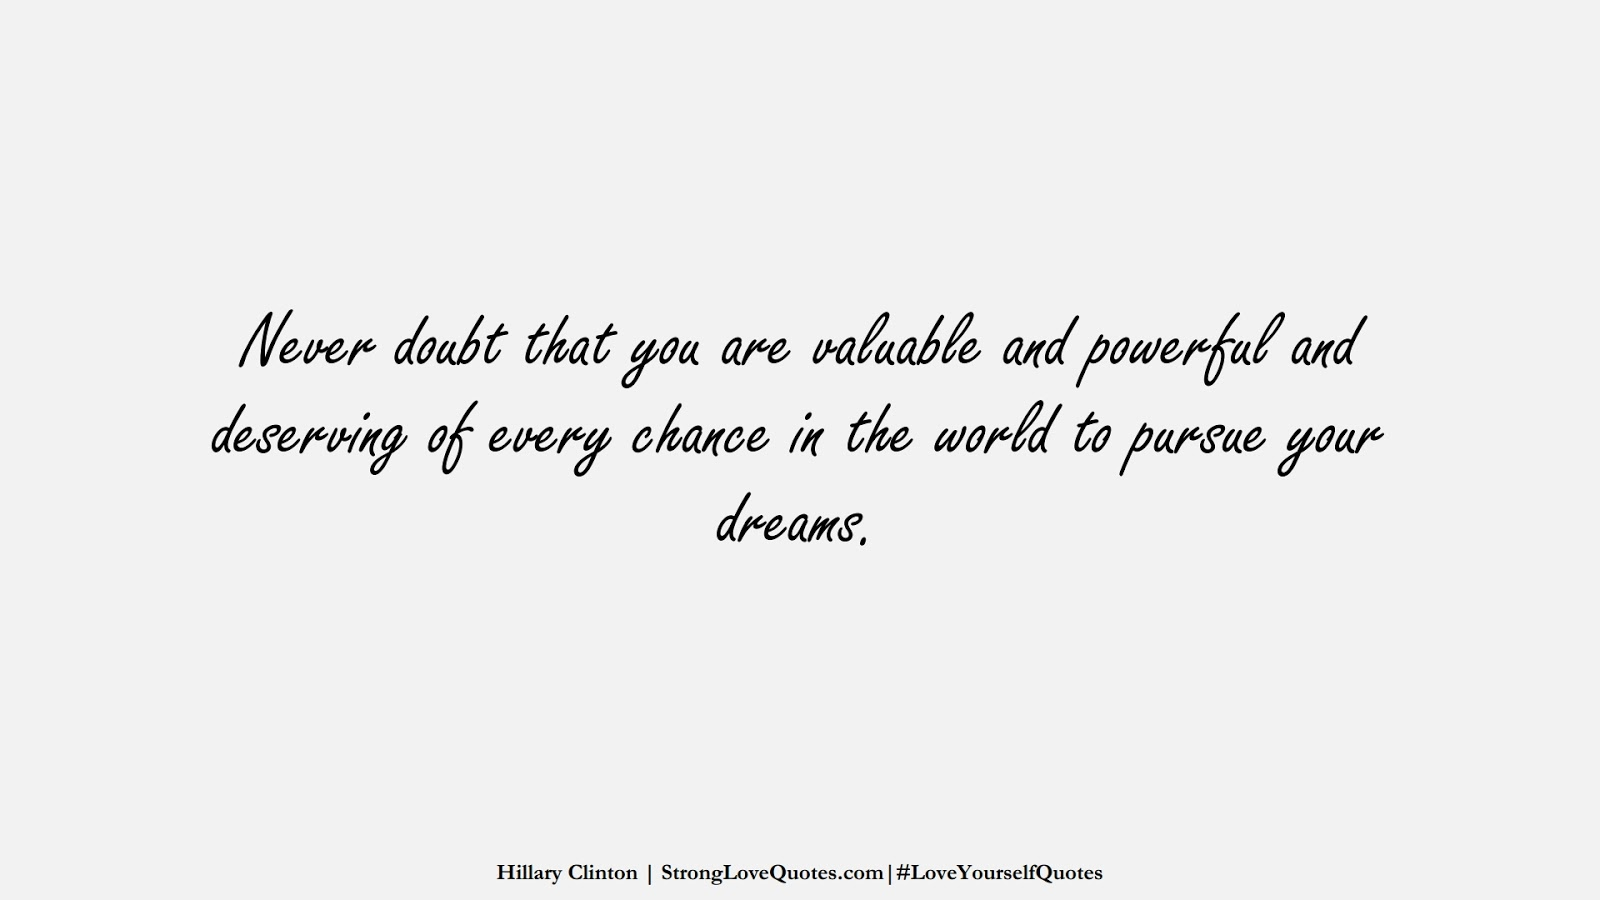 Never doubt that you are valuable and powerful and deserving of every chance in the world to pursue your dreams. (Hillary Clinton);  #LoveYourselfQuotes